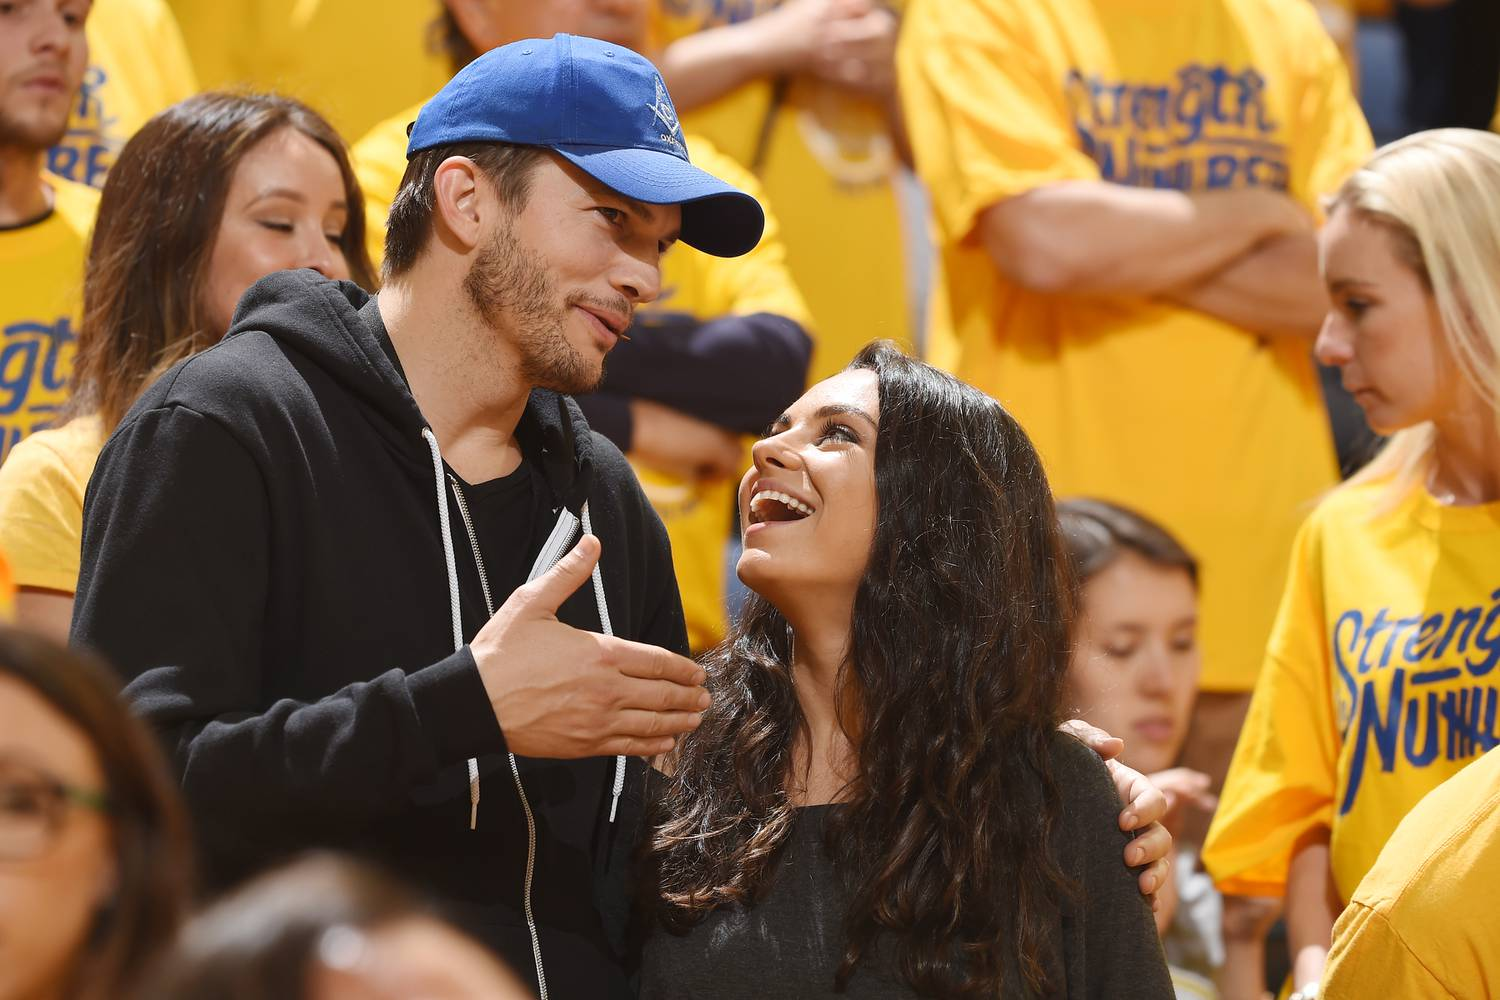 Mila Kunis and Ashton Kutcher's family is still very nice